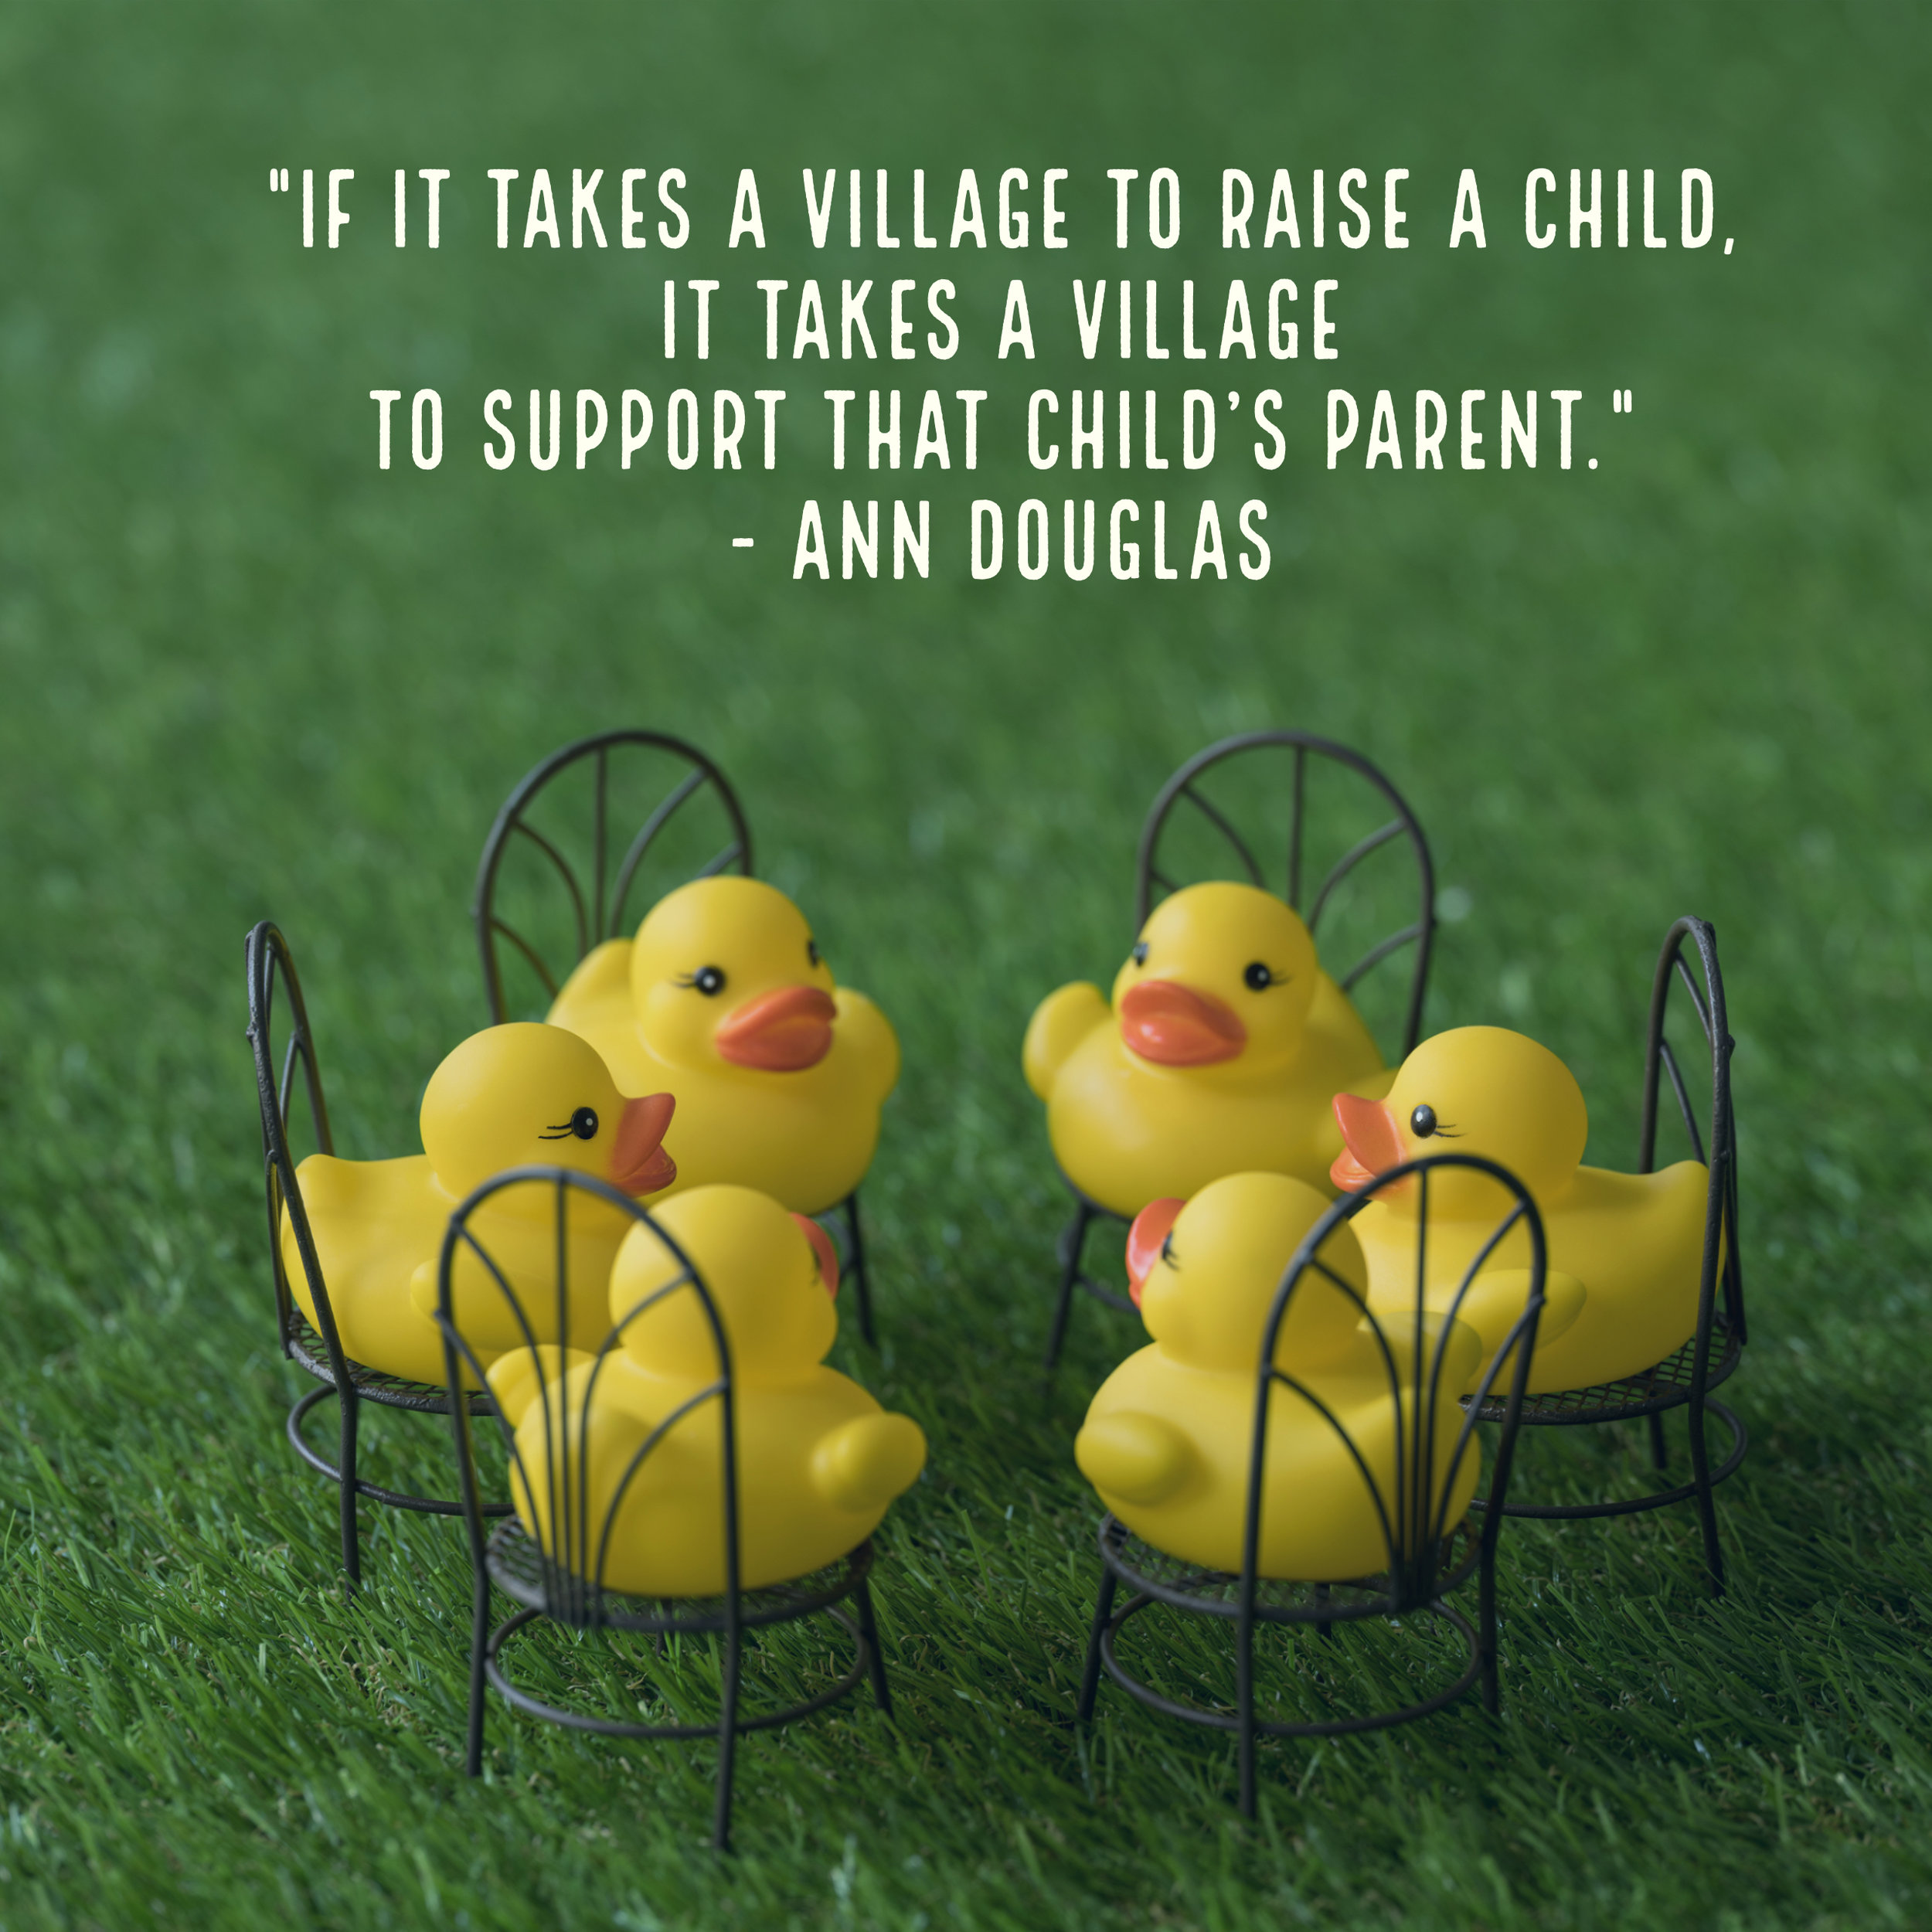 If it takes a village to raise a child, it takes a village to support that child's parent. Here's how to be that village….